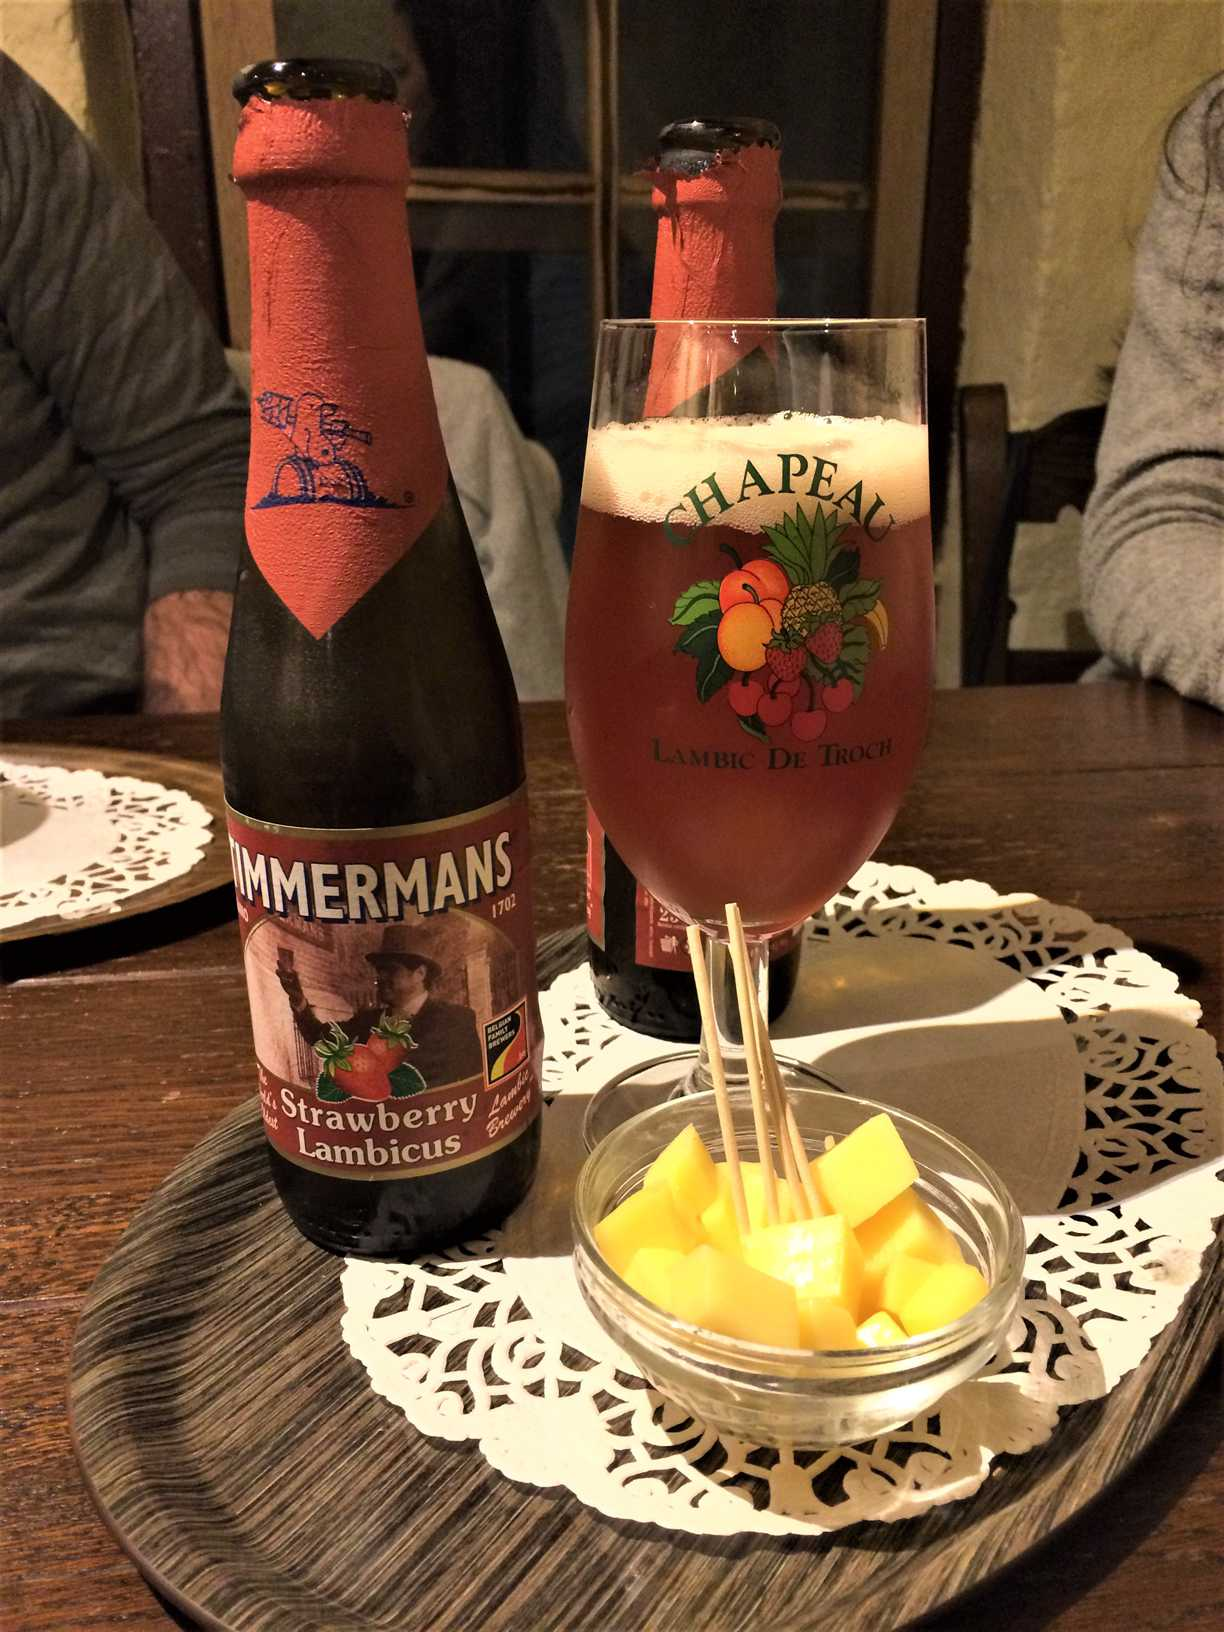 This picture shows two bottles of Zimmermans strawberry lambicus beer, a glass of beer, and a small bowl of cubed cheese with toothpicks sticking out.